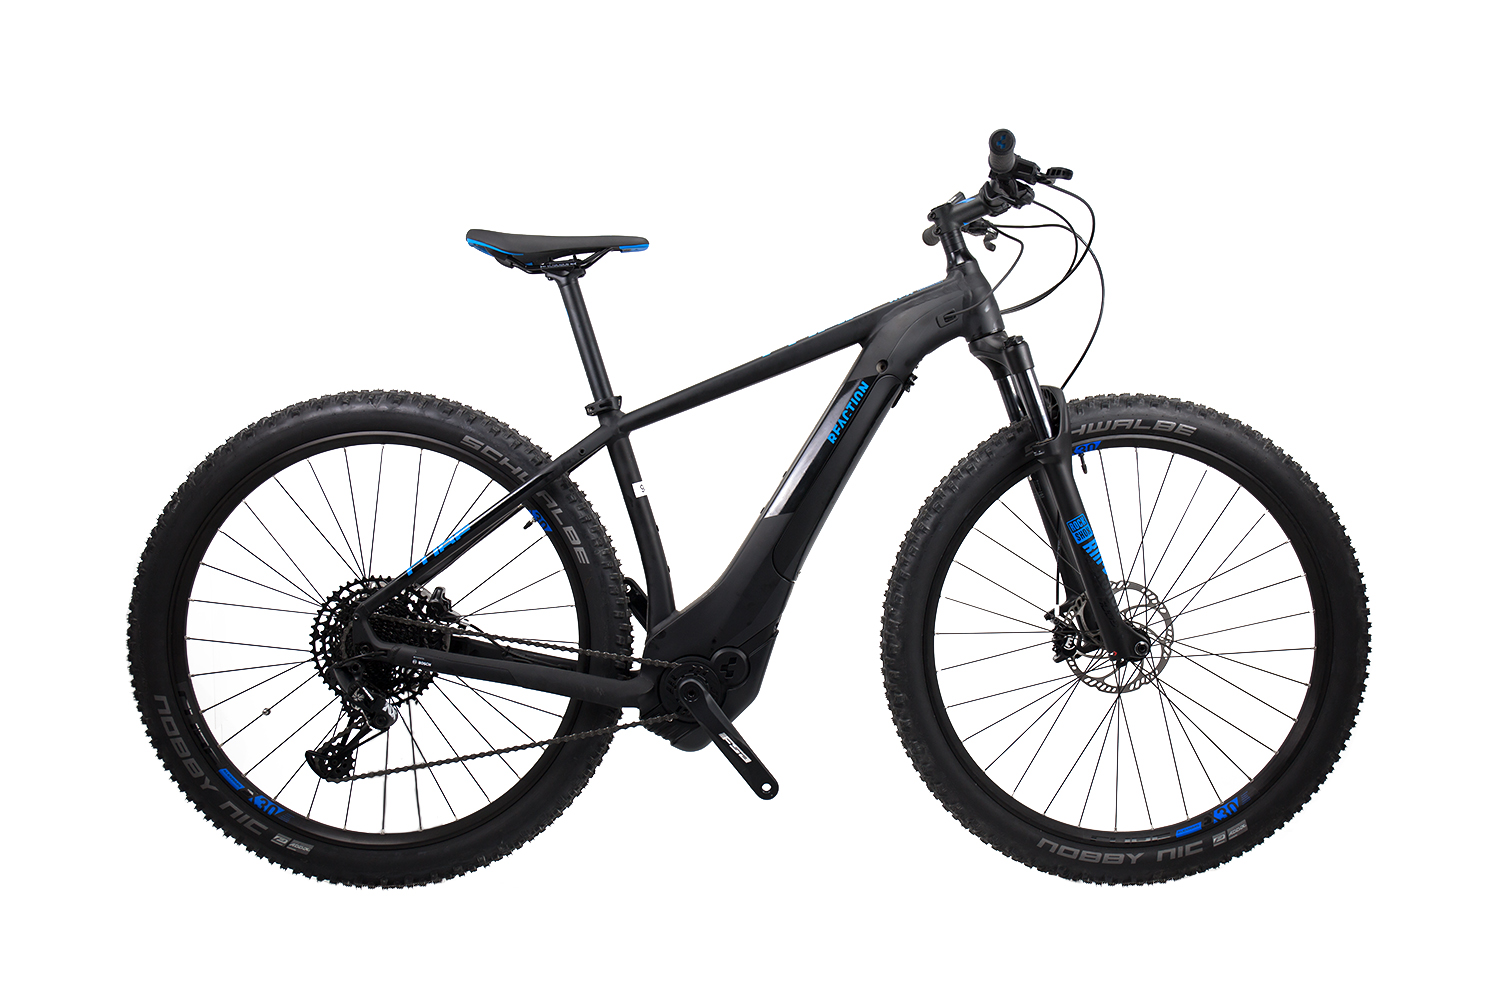 Cube Reaction Hybrid EAGLE 500 black´n´blue 2019 - MTB 29 -  17 Zoll